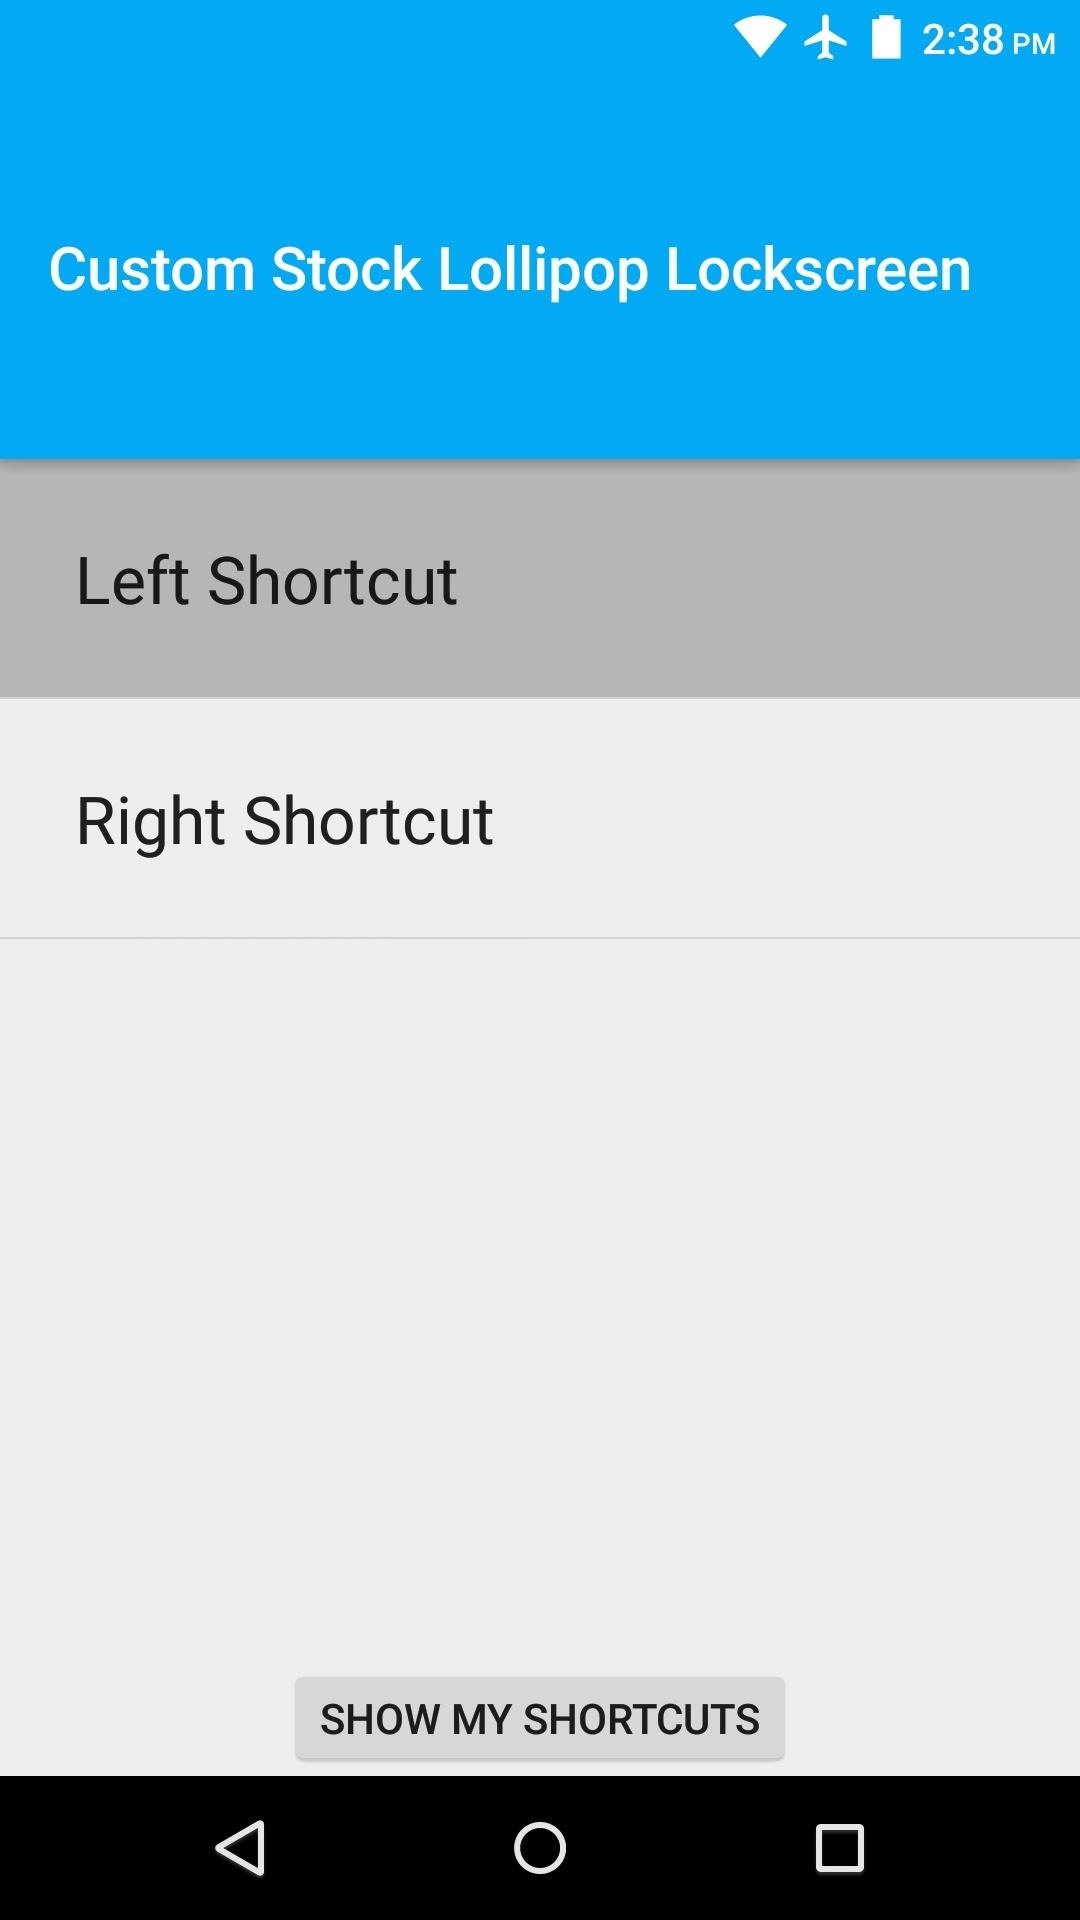 How to Get Custom Lock Screen Shortcuts on Android Lollipop